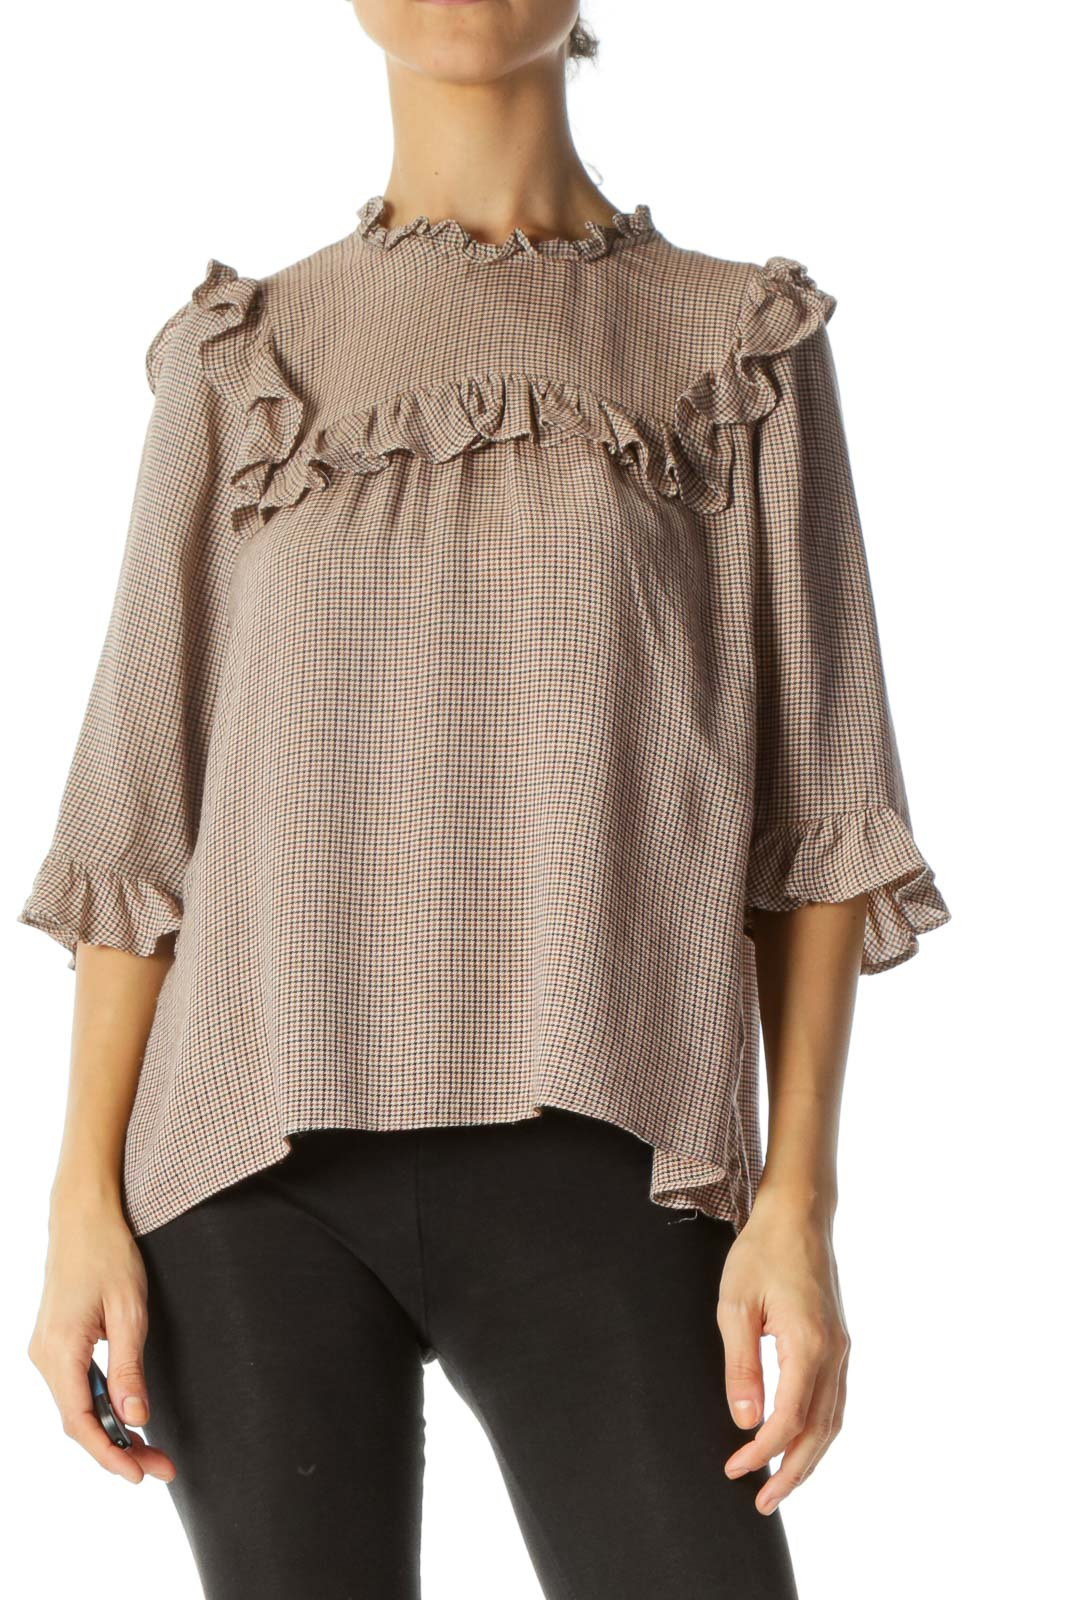 Brown Houndstooth Ruffled Bibbed 3/4 Sleeve Blouse